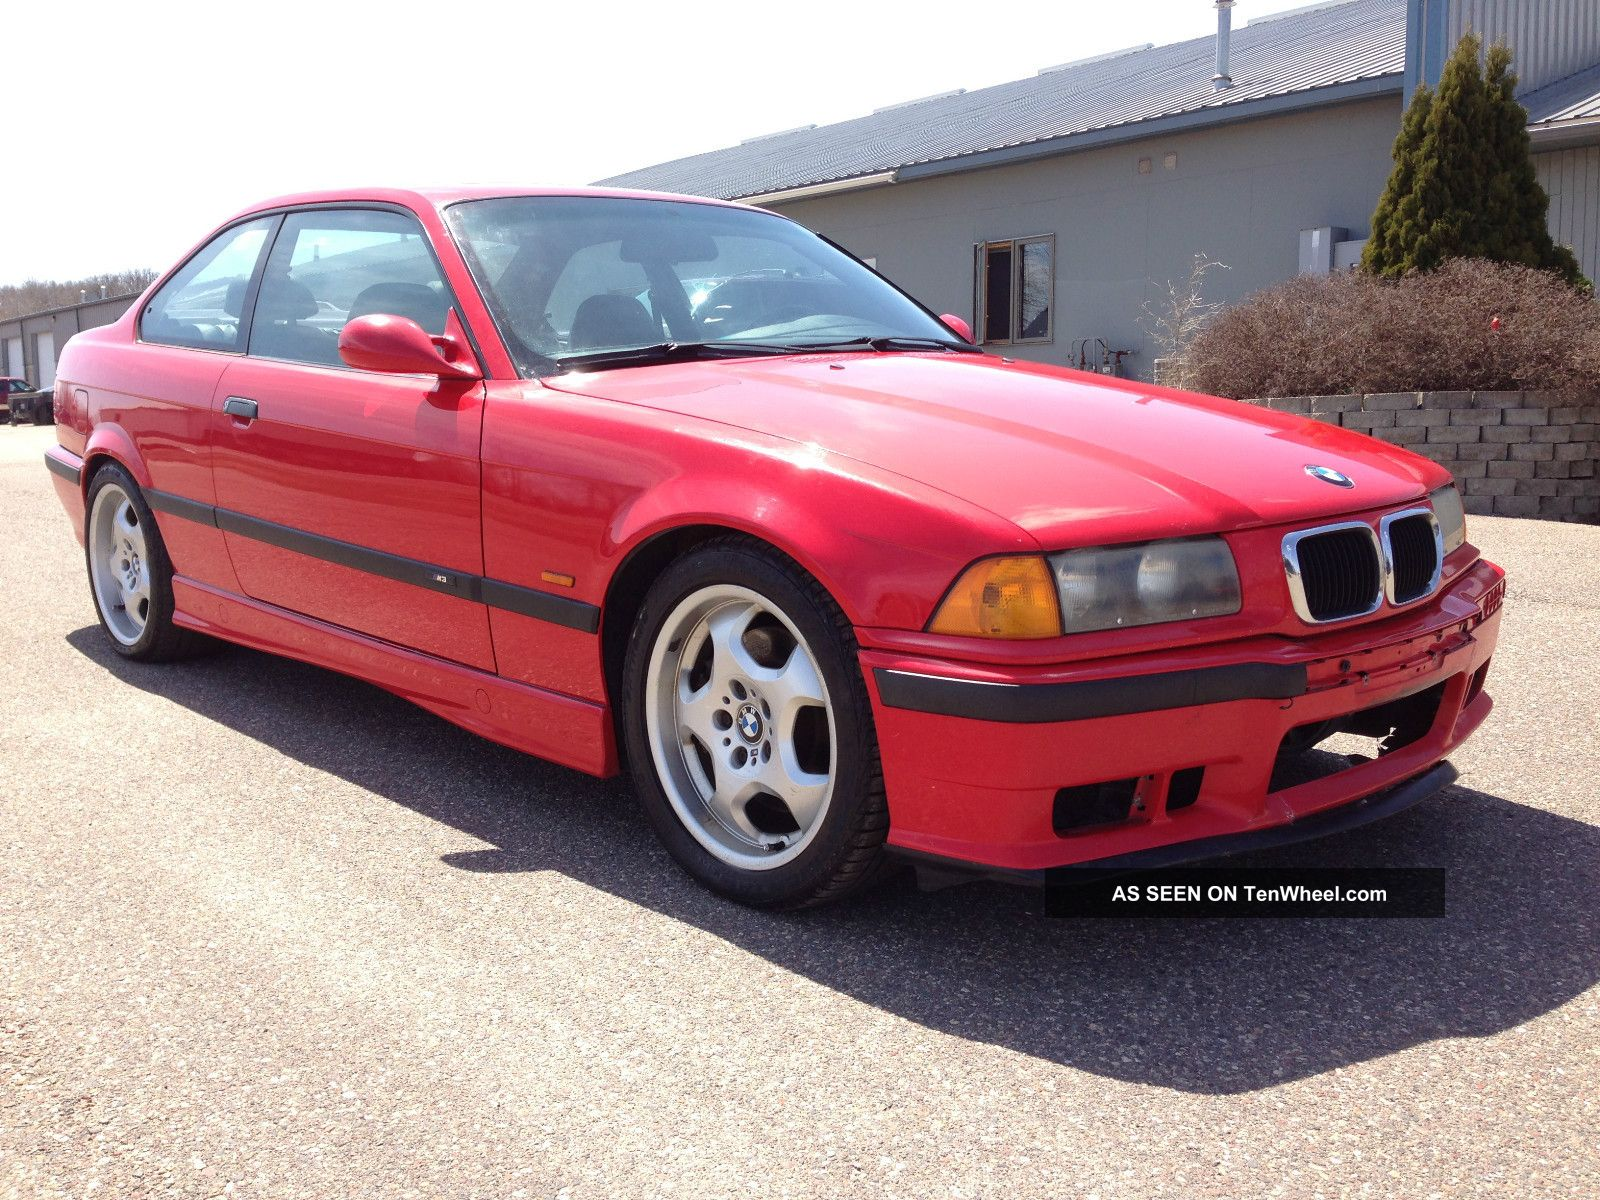 1999 Bmw E36 M3 Hellrot Red Vaders Black Manual 5spd 3.  2l S52 Contour M3 photo